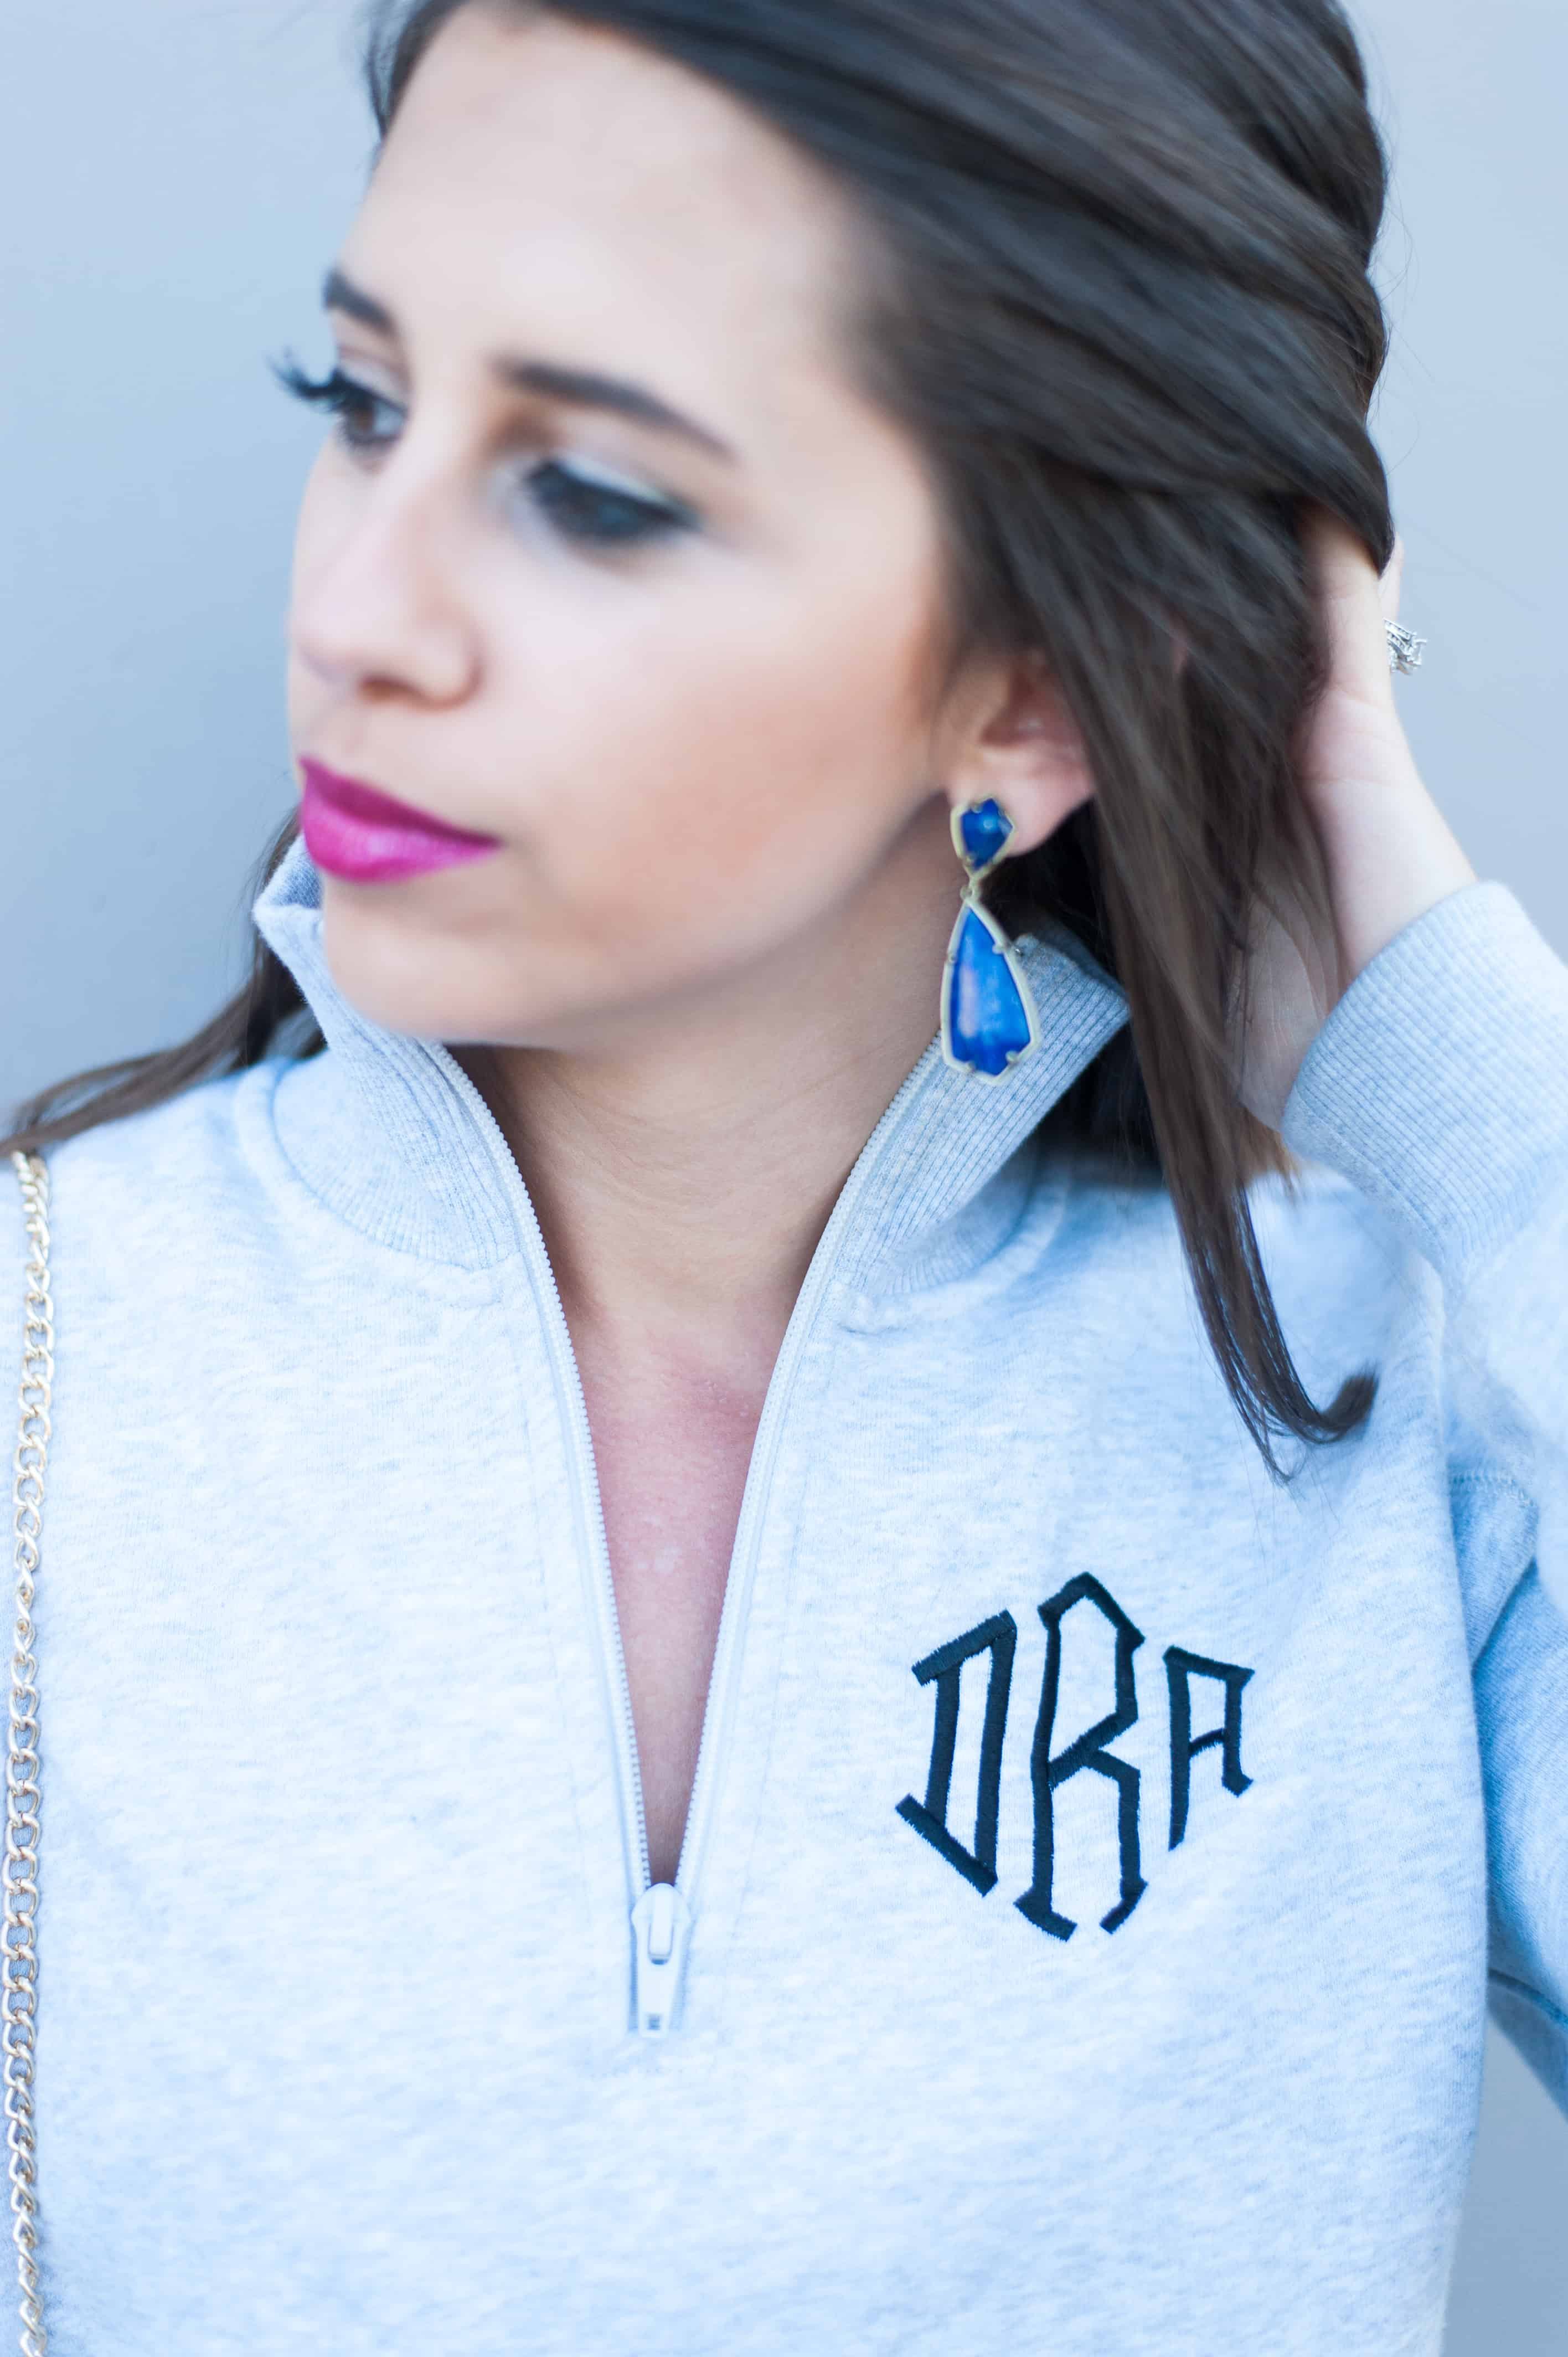 Dress Up Buttercup // A Houston-based fashion and inspiration blog developed to daily inspire your own personal style by Dede Raad | Marley Lilly